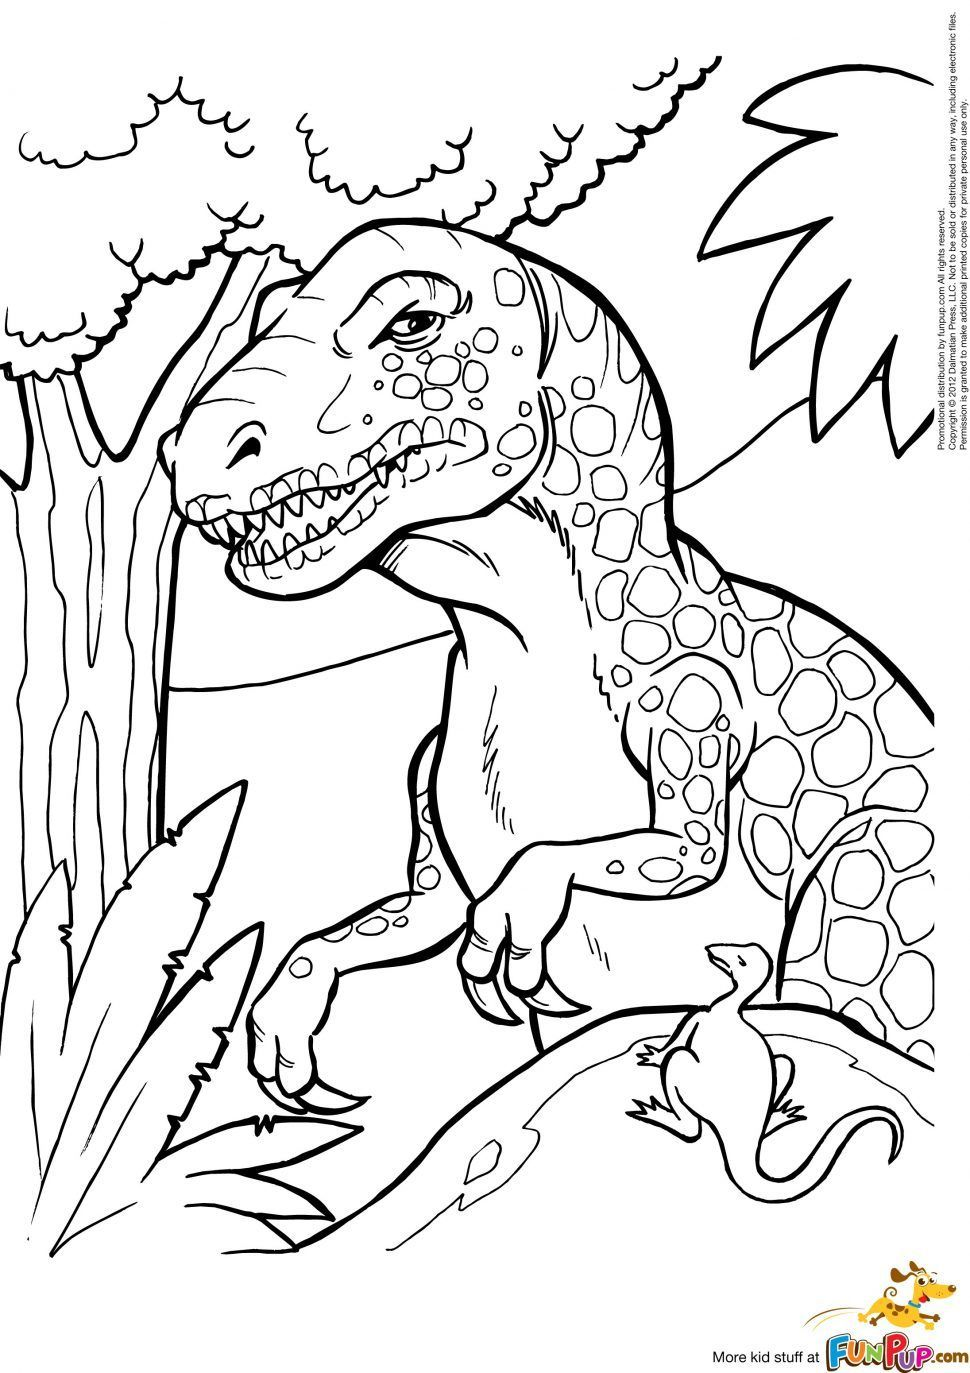 T-Rex-Coloring-Page (13).jpg (970×1373) | adult coloring | Pinterest ...